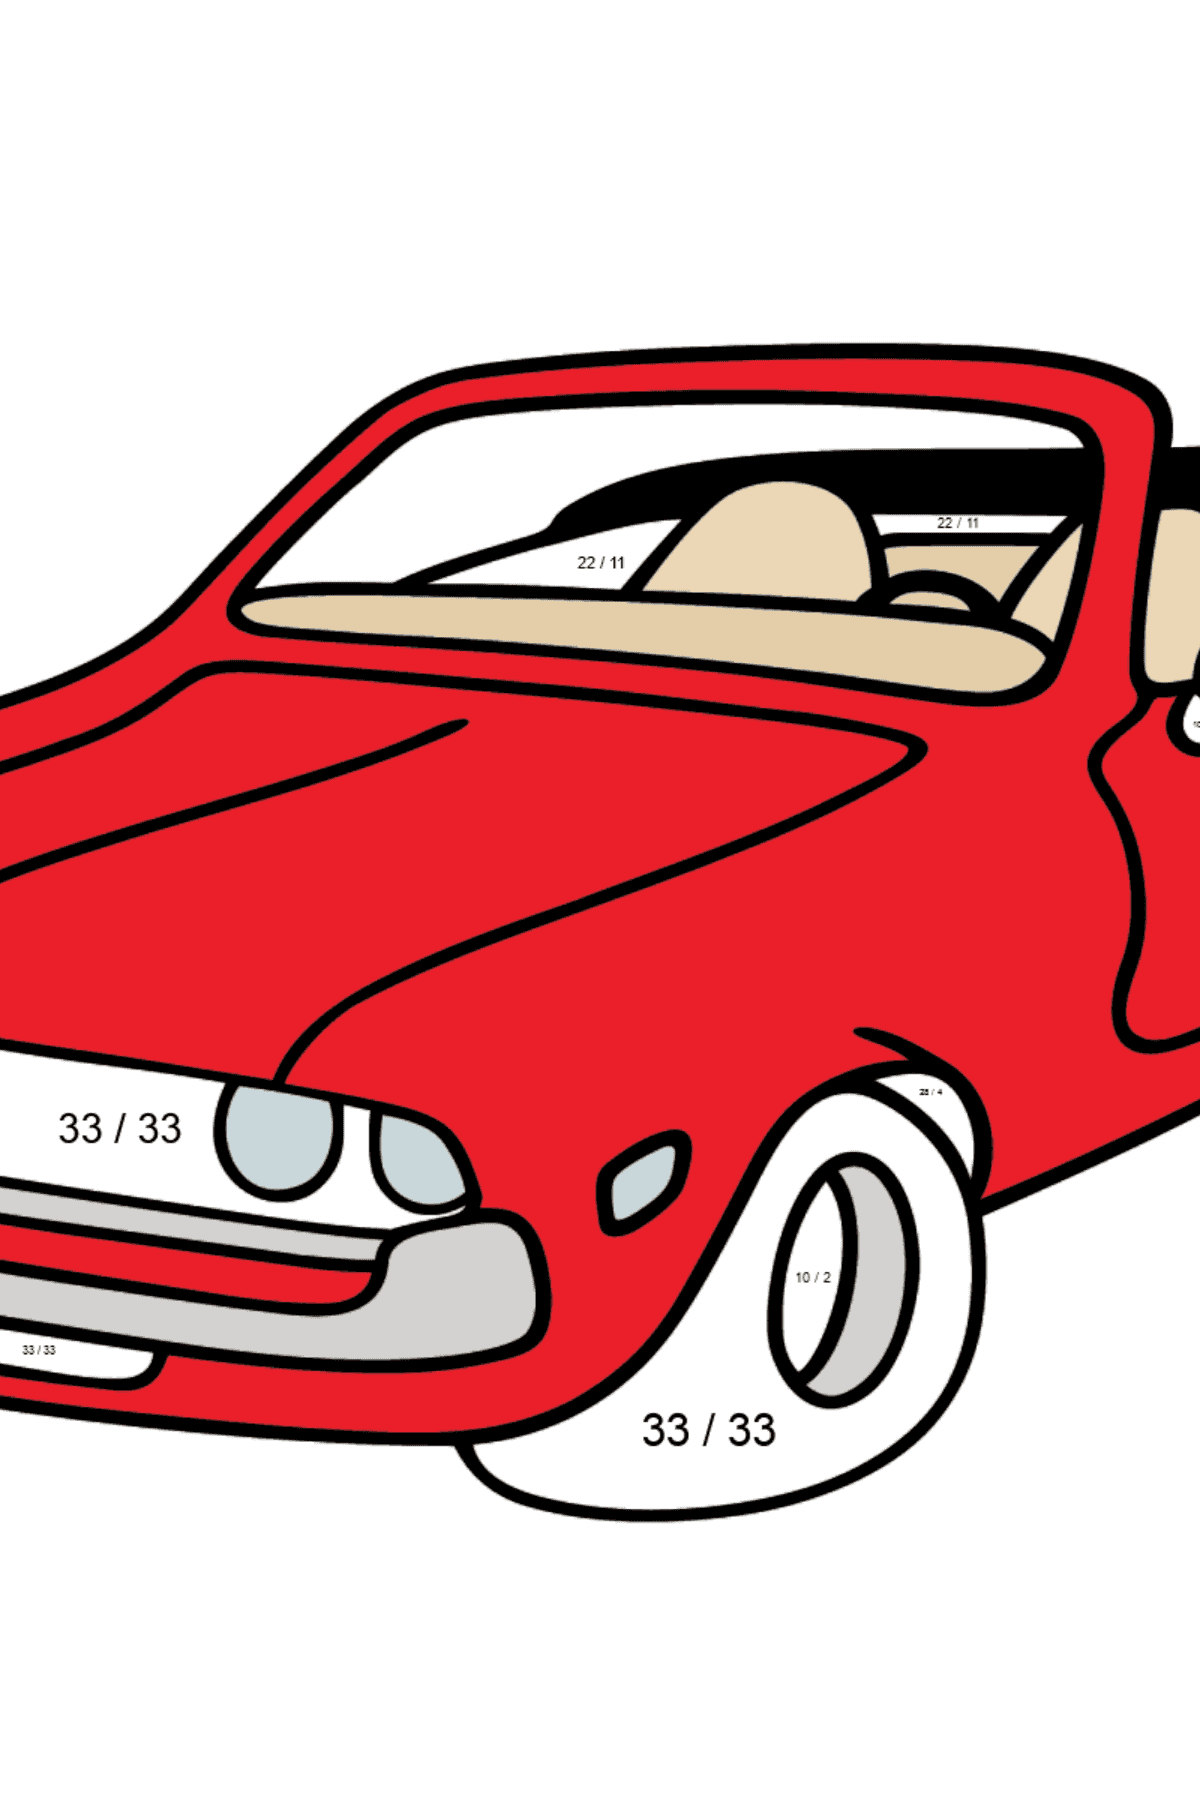 Open Top Cars coloring page - Math Coloring - Division for Kids